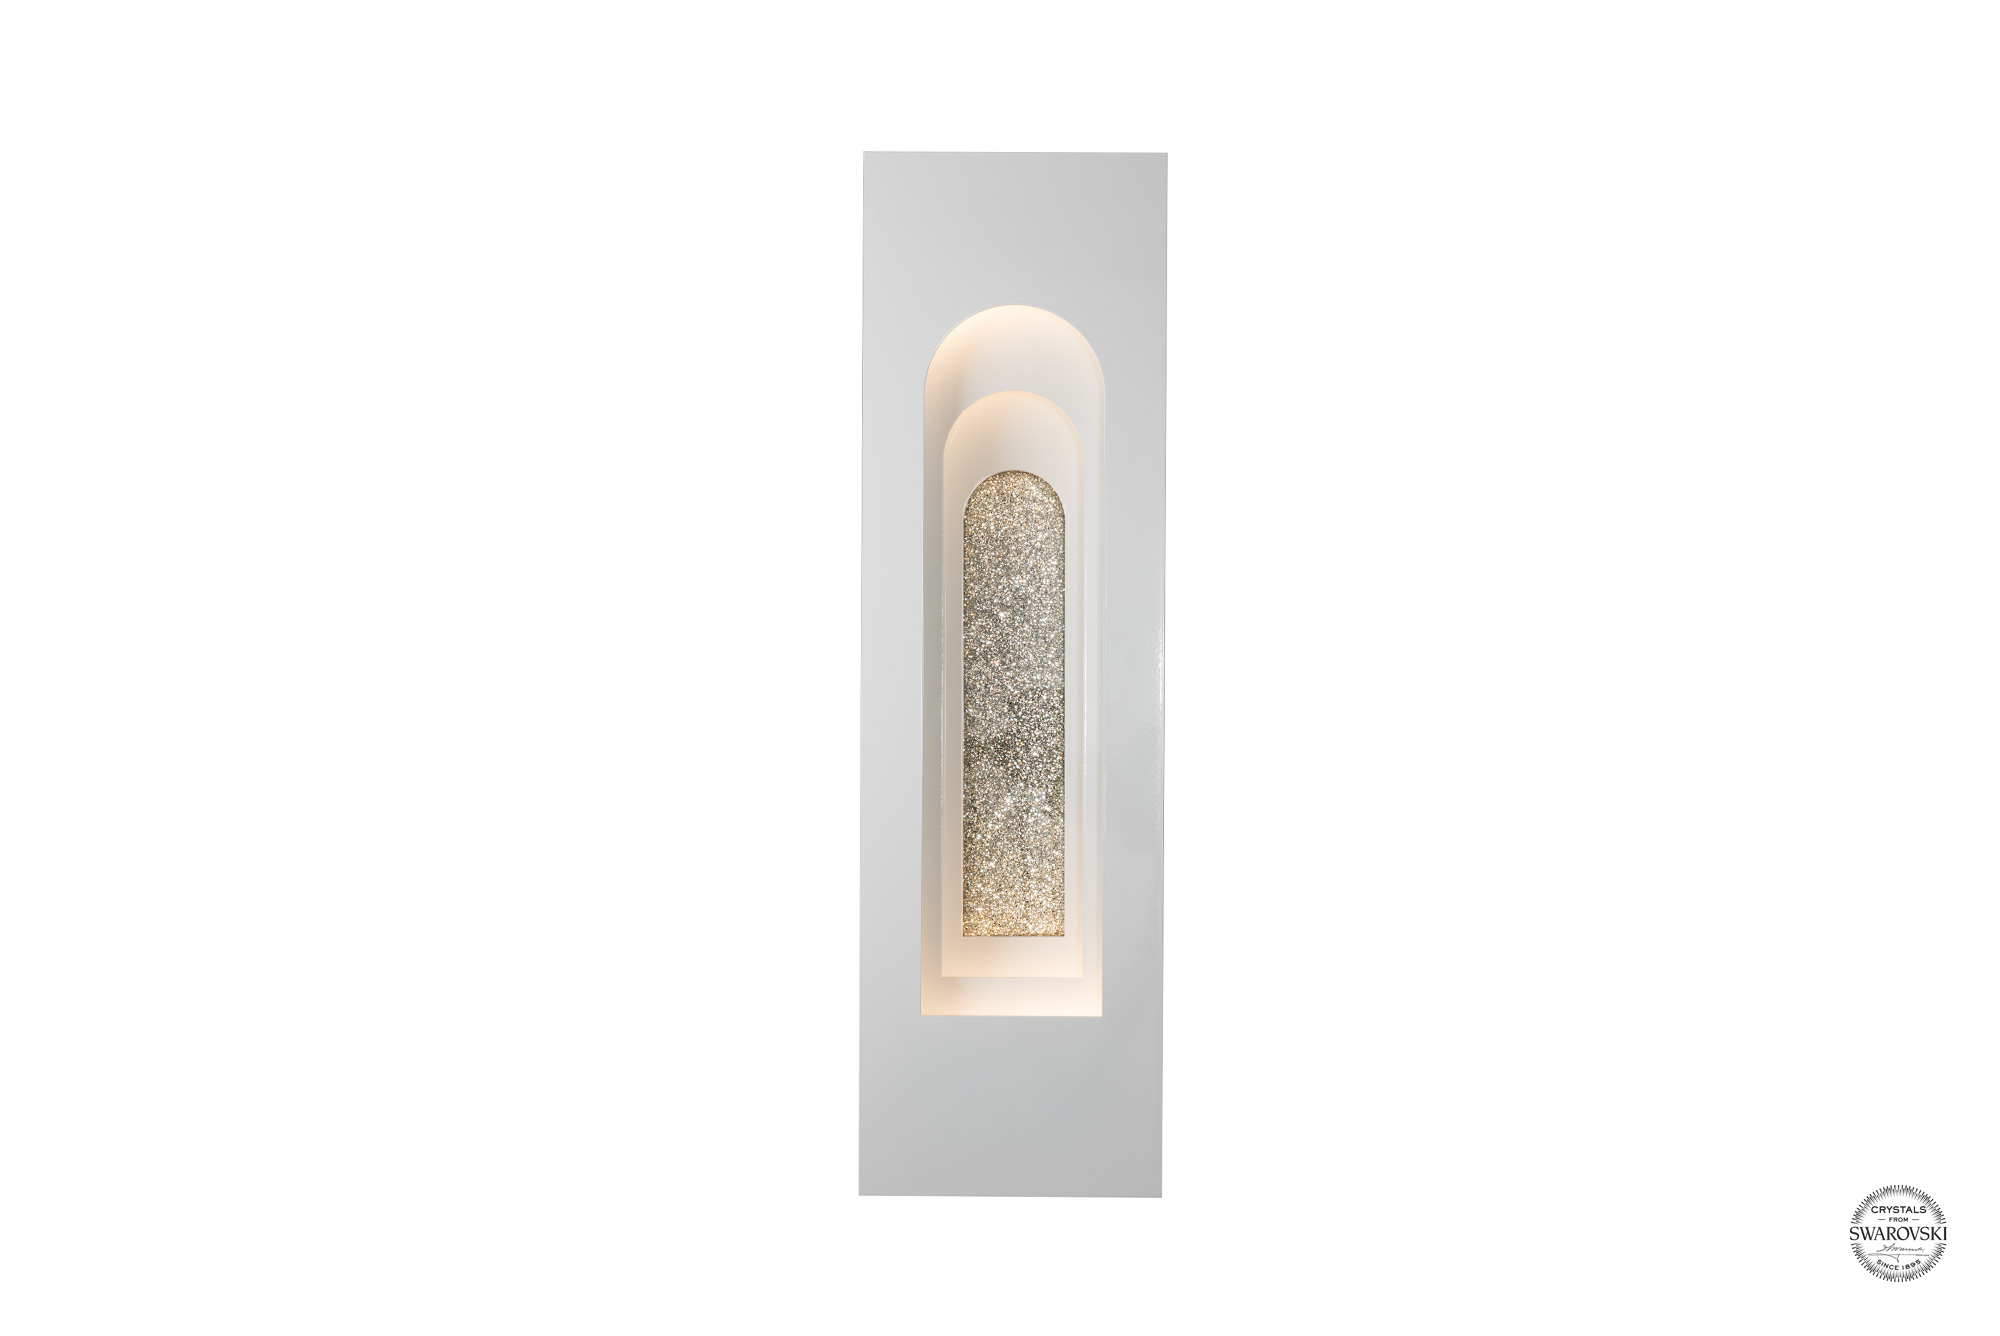 PROCESSION ARCHED OUTDOOR SCONCE – SMALL WITH SWAROVSKI® INSET